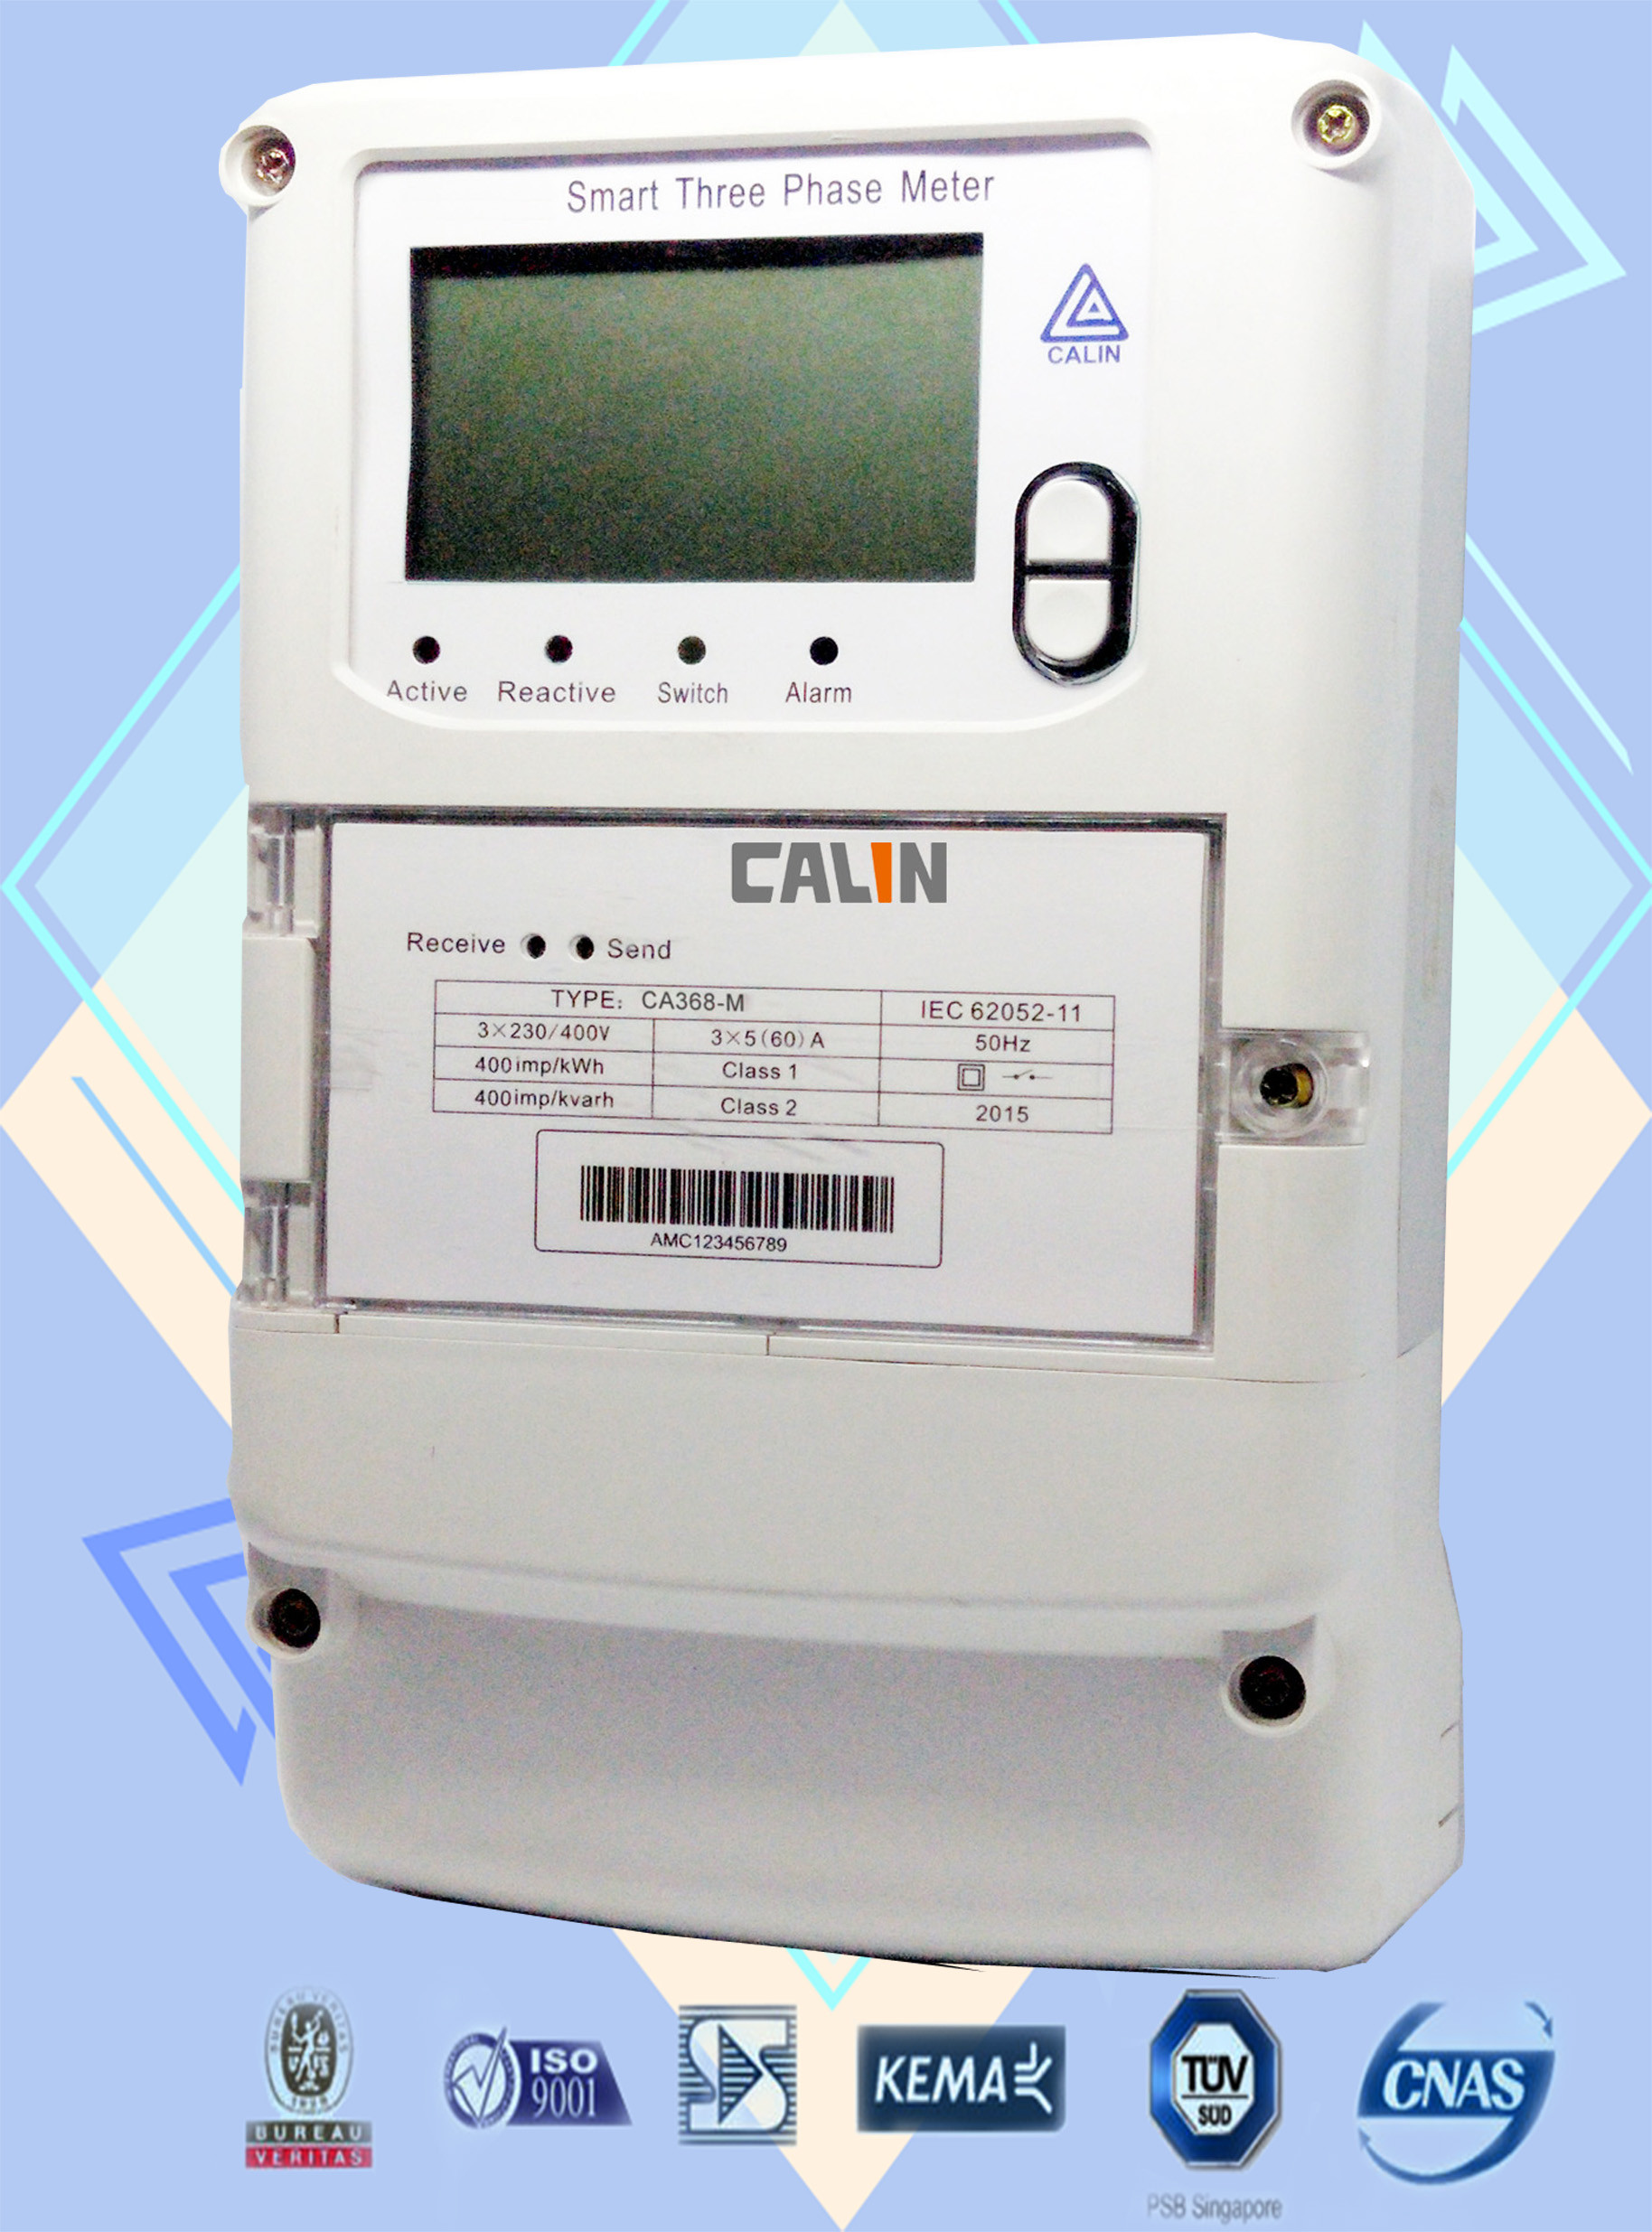 4 Channel Commercial Electric Meter , Three Wire / Four Wire ... on kv meter, co2 meter, btu meter, keg meter, electric meter, landis gyr meter, bike trainer with power meter, kilowatt meter, frequency meter, temperature meter, inductance meter, phoenix meter, power factor meter, ppm meter,